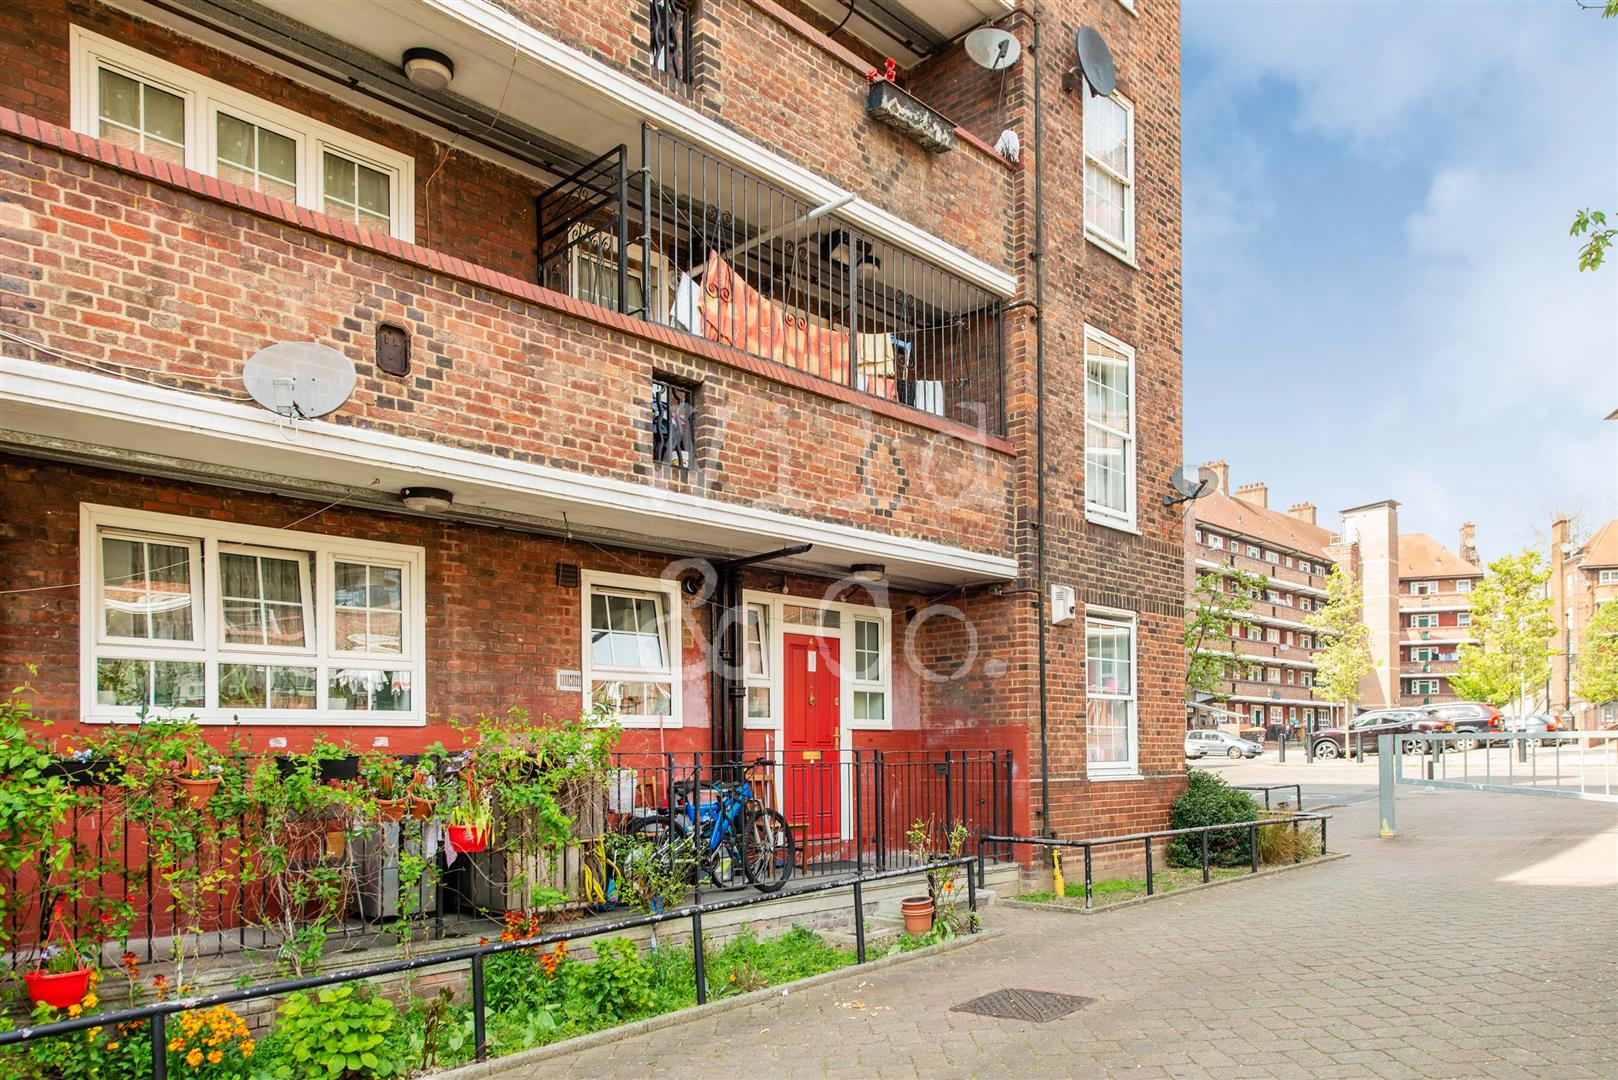 Properties For Sale in Hackney - Flats & Houses For Sale ...